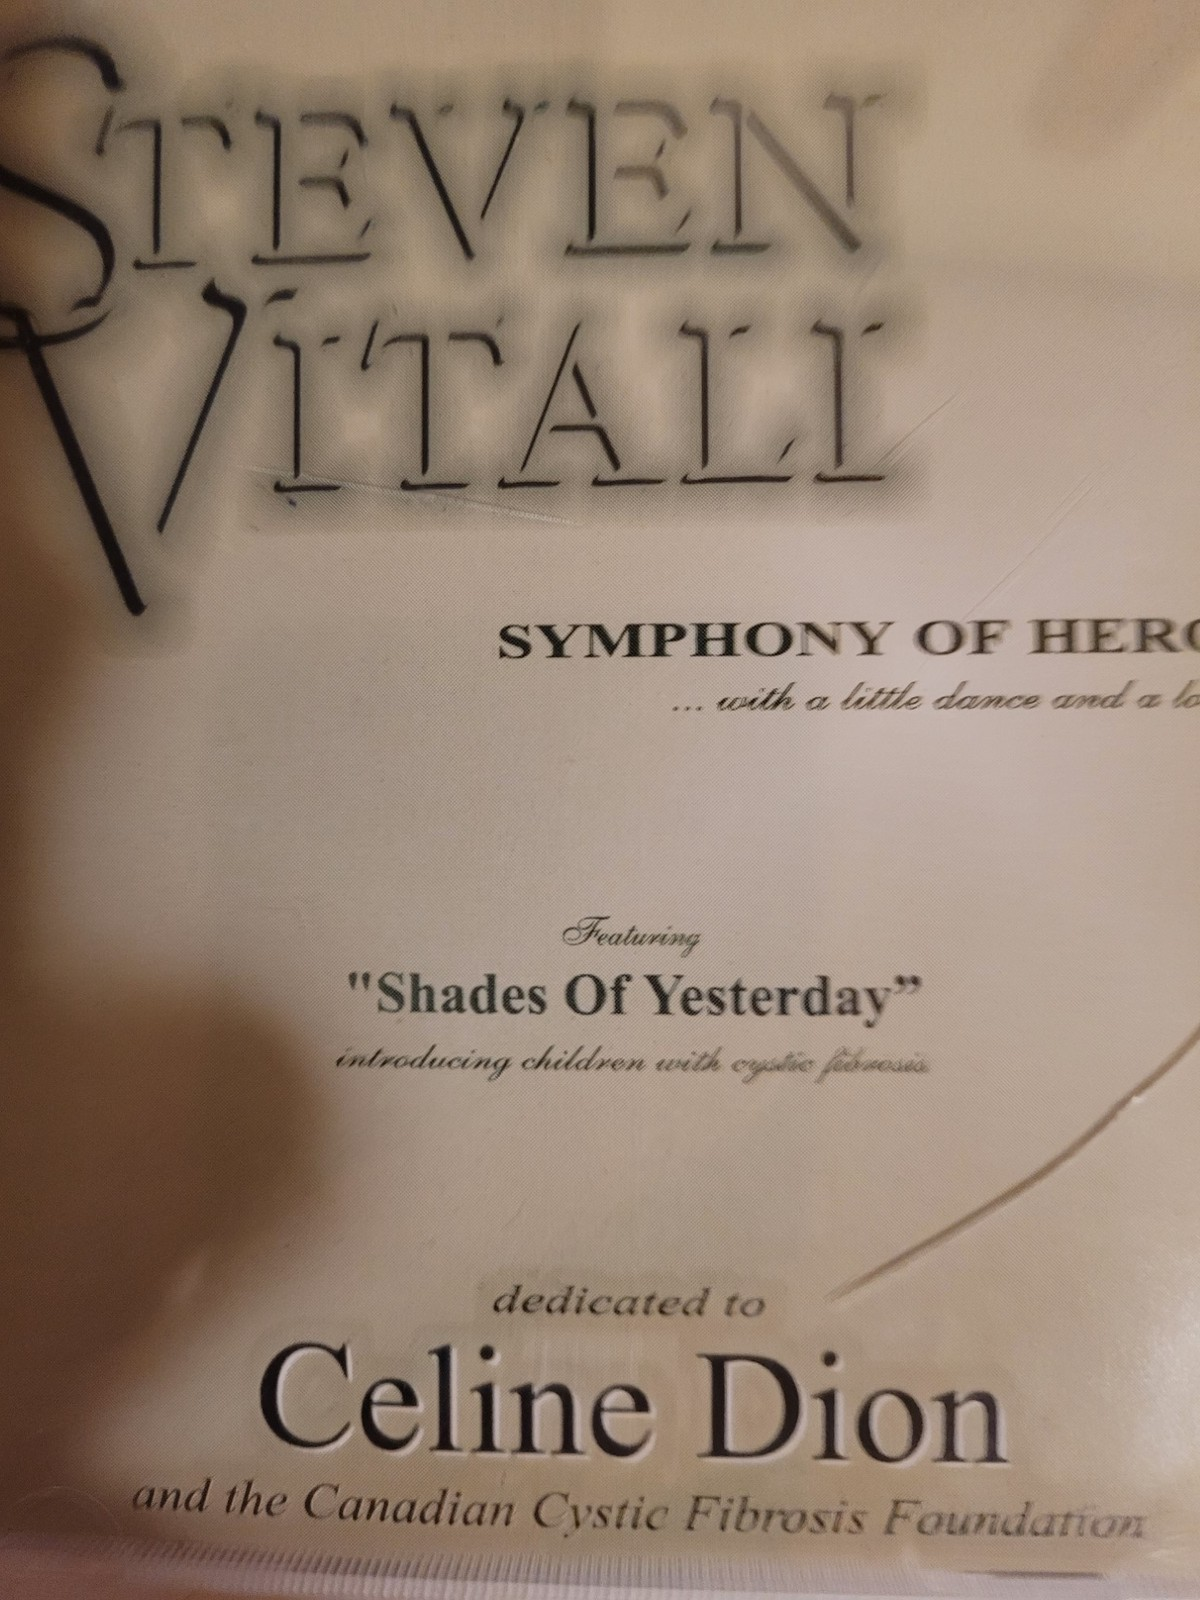 Symphony of Heroes by Steven Vitali Cd